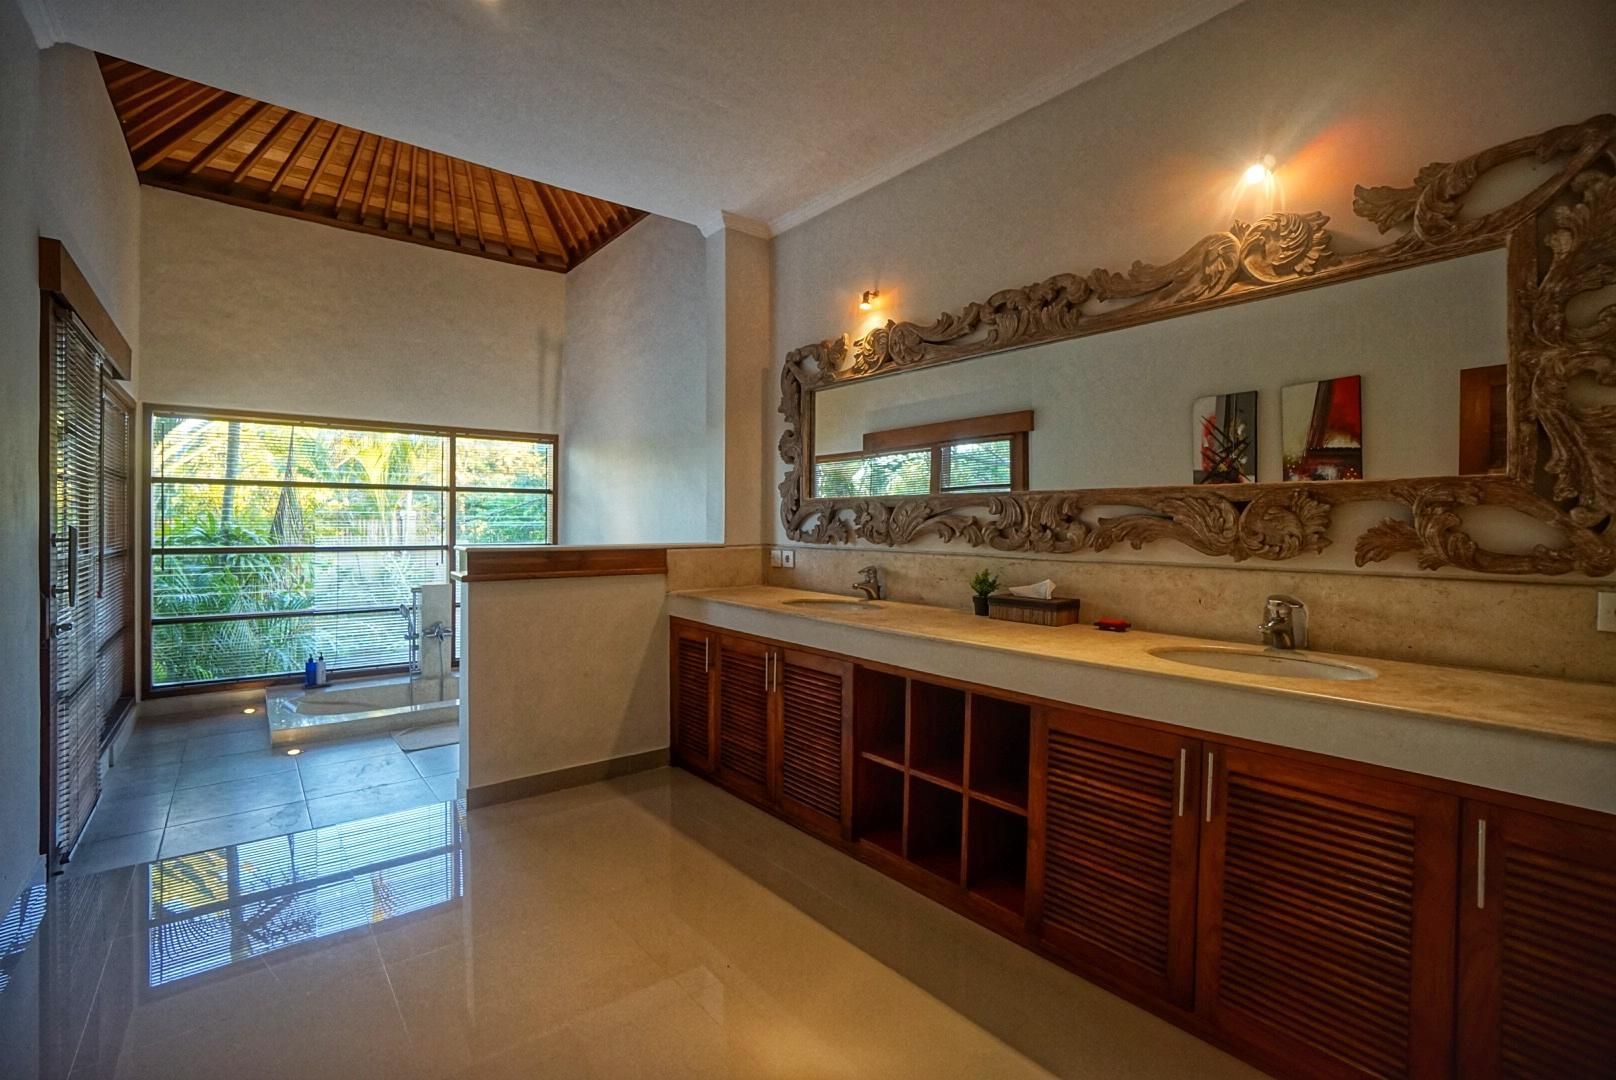 Reviews NEW! 3BR Huge Villa with huge pool - PROMO RATE!!!